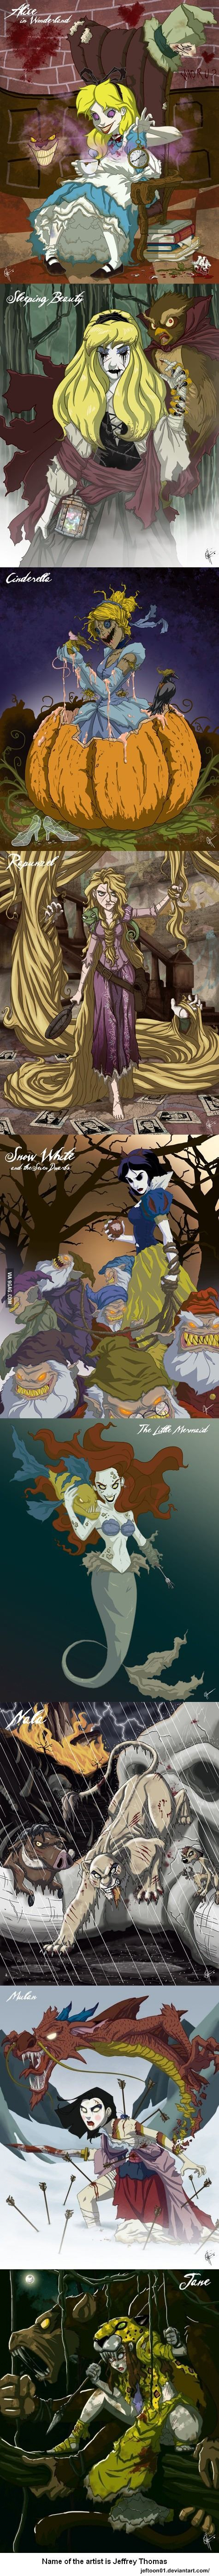 Twisted Disney Princesses and other Disney characters.